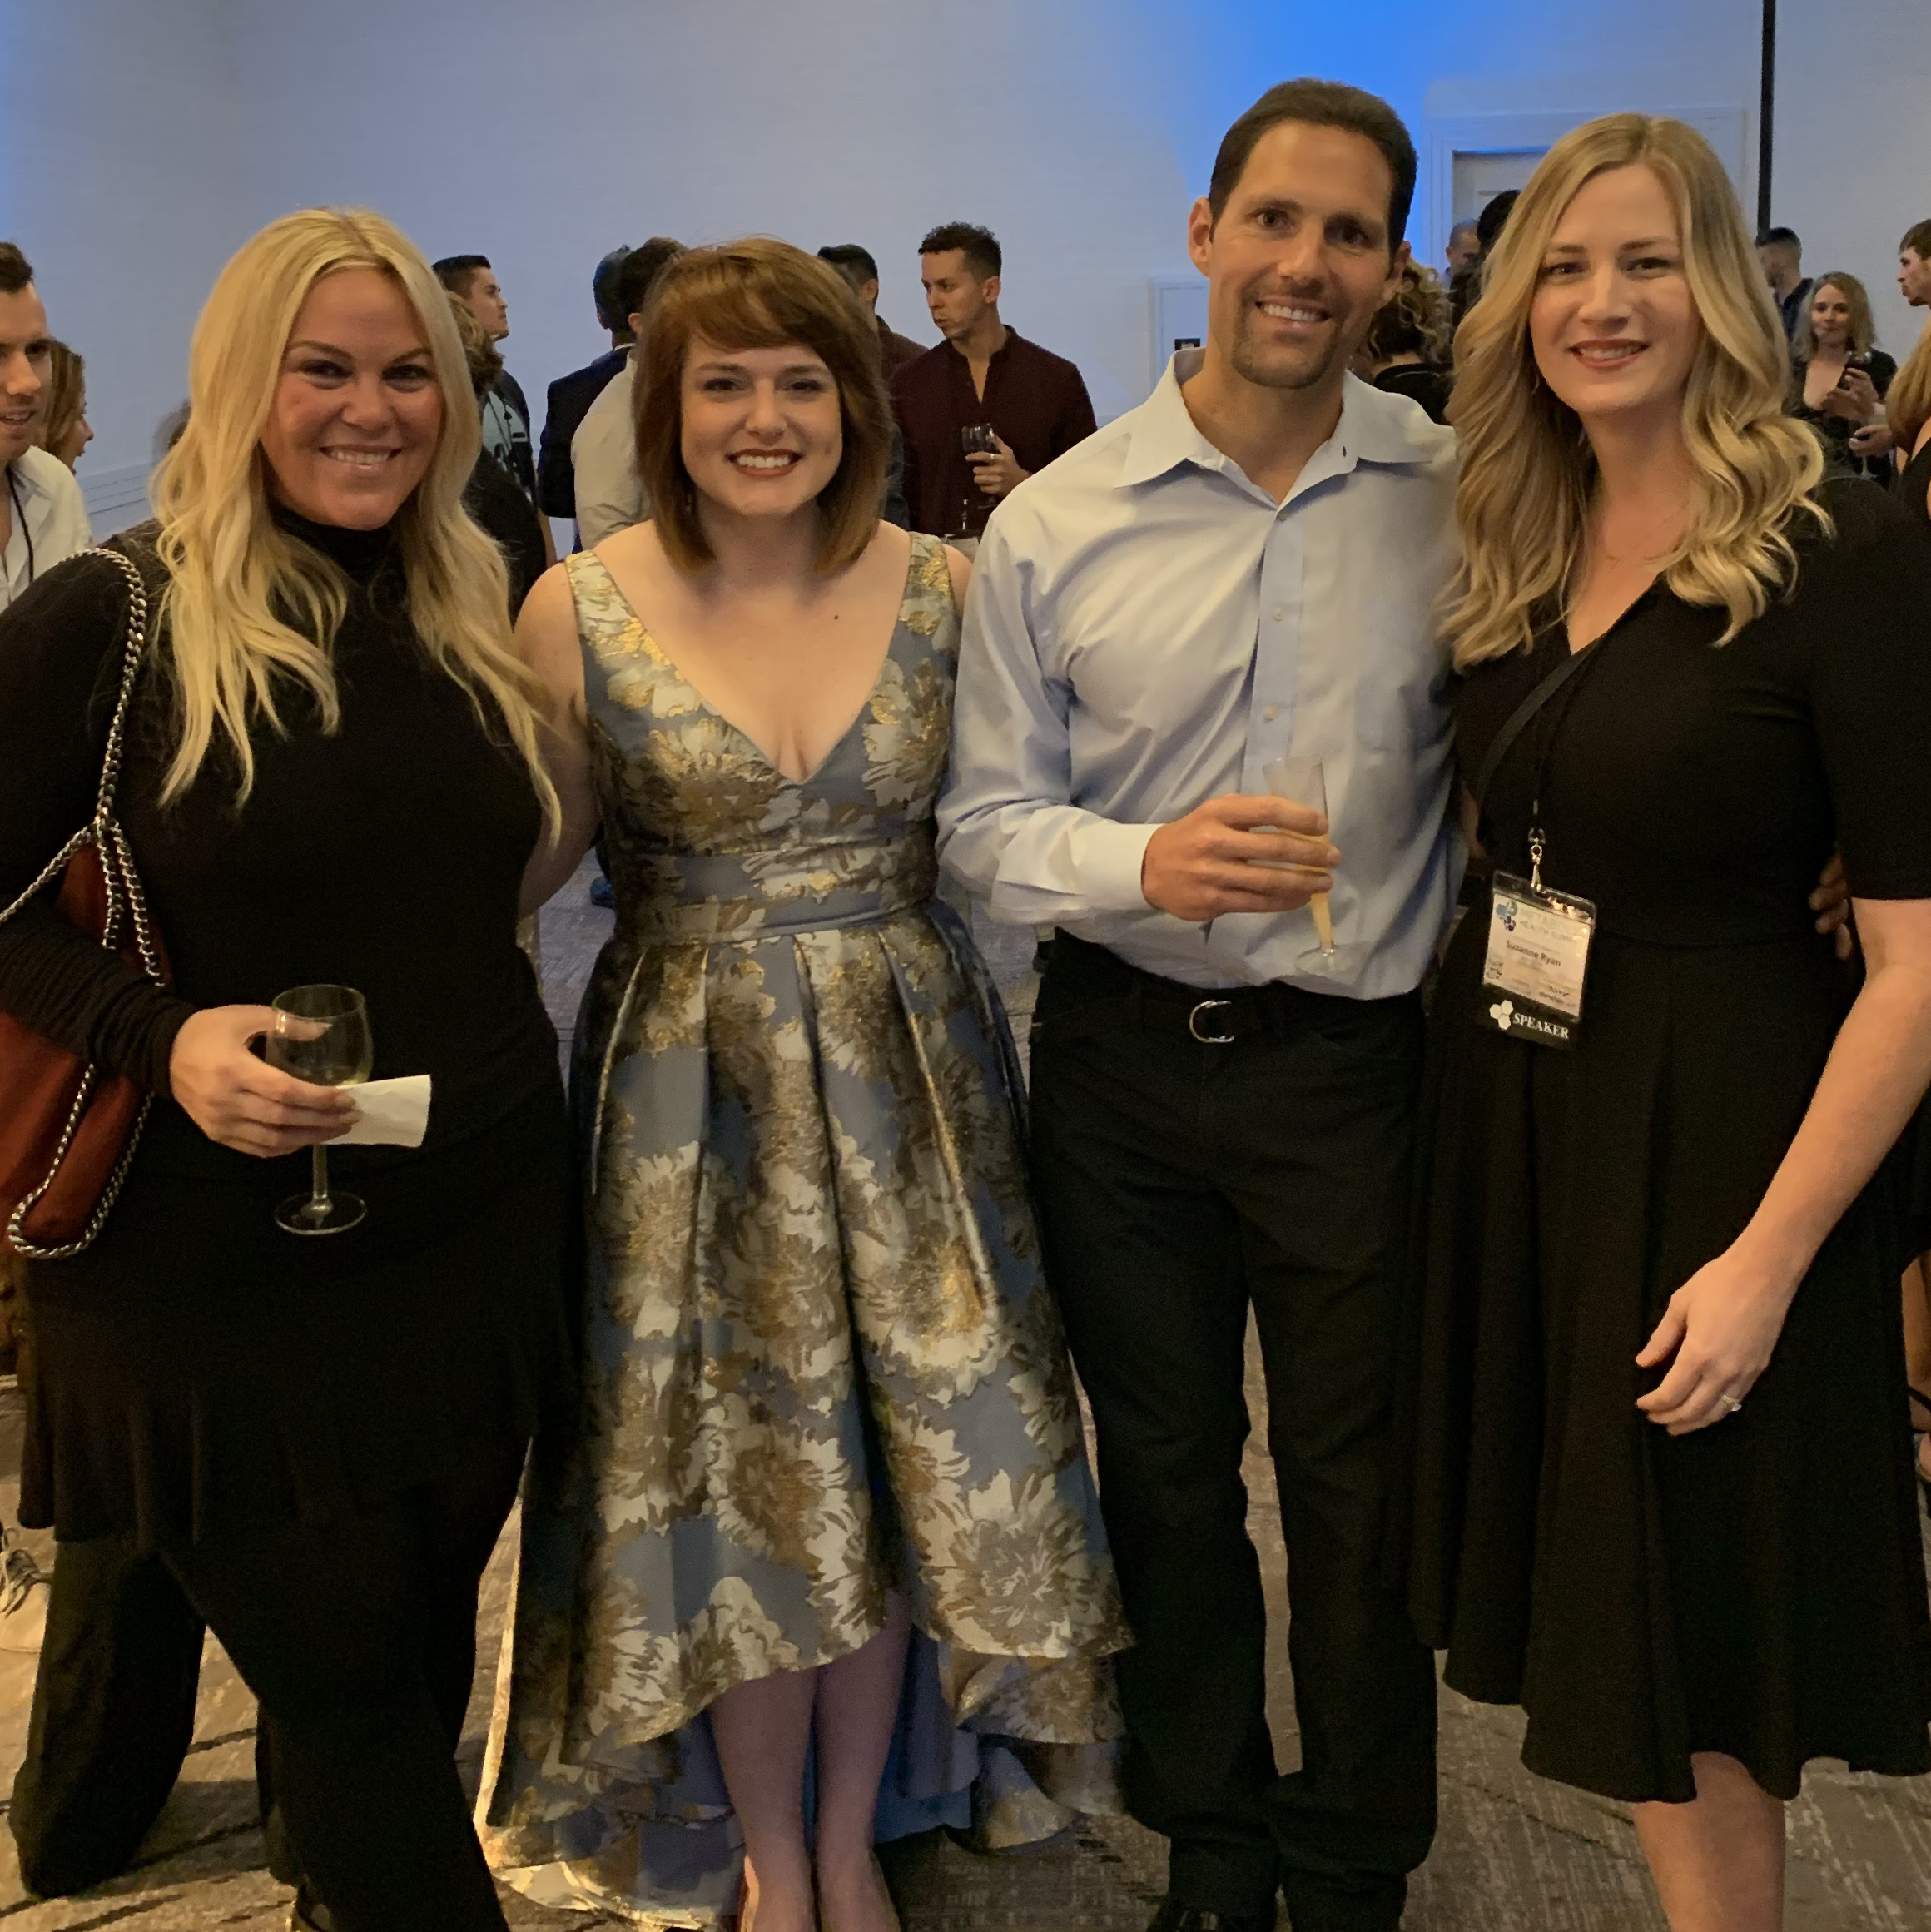 Me, Dr. Angela Poff, Dr. Dominic D'Agostino, and Suzanne